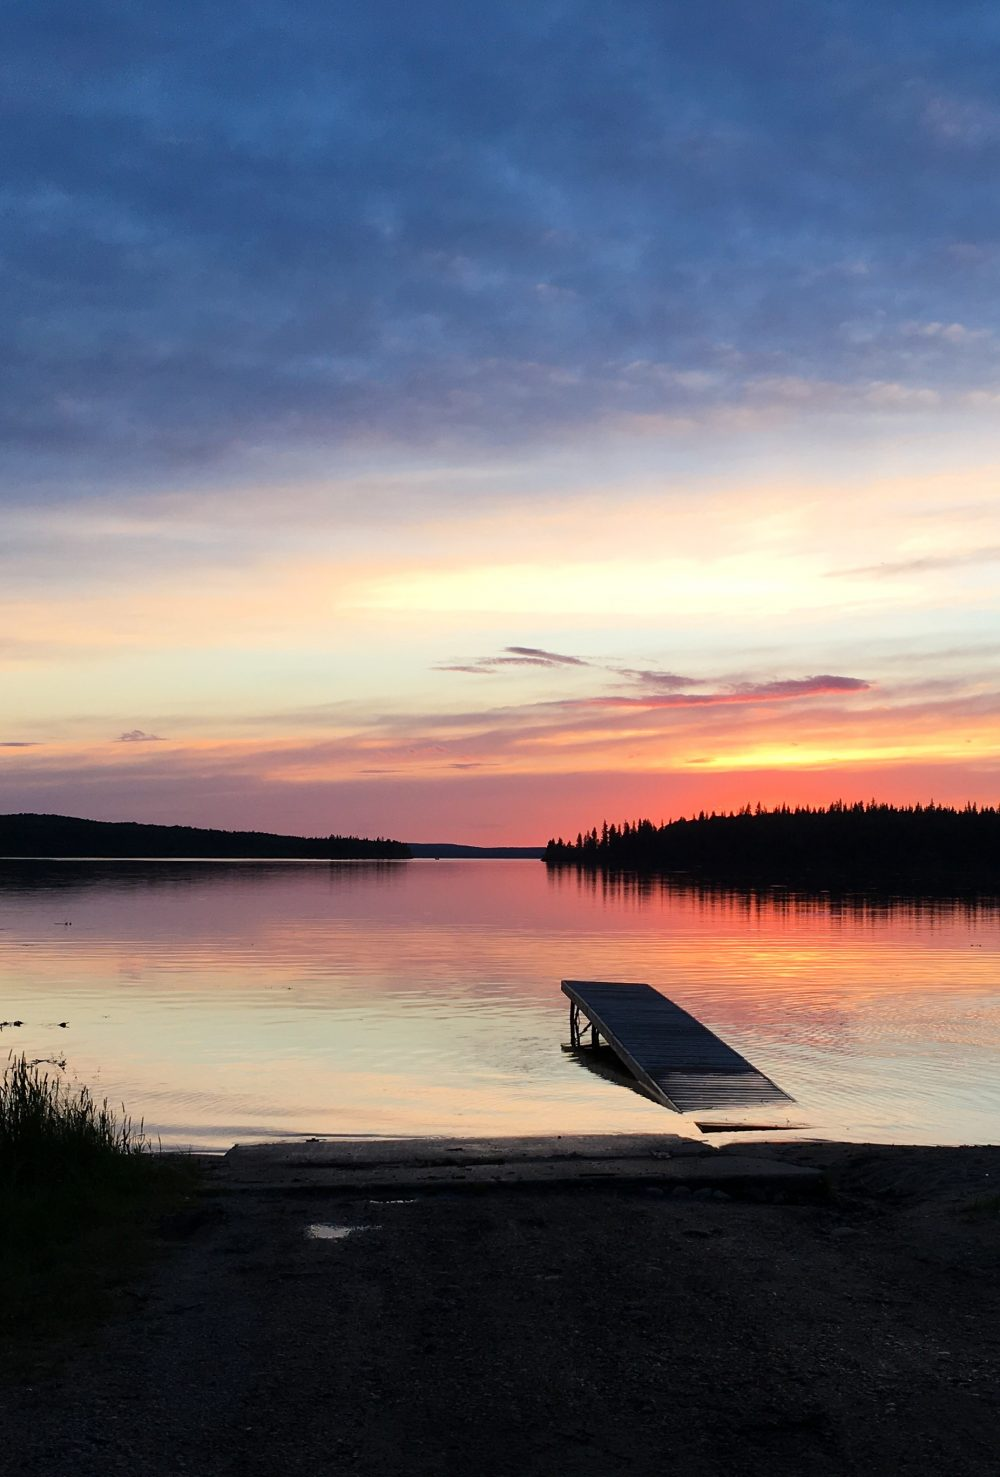 Sunset reflecting on the calm water at Pierce Lake, Saskatchewan